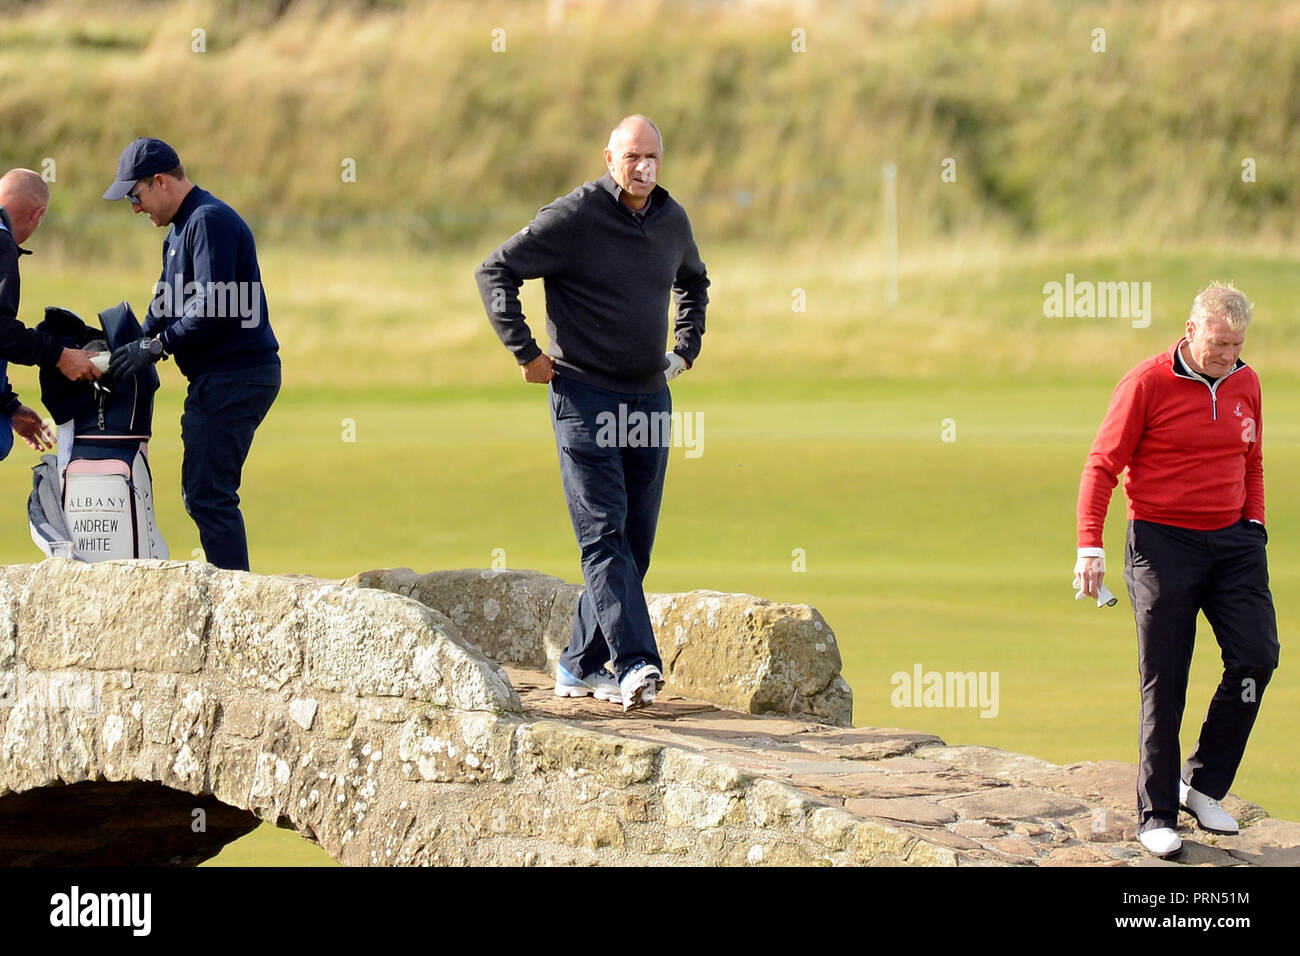 St Andrews, Scotland, United Kingdom, 03, October, 2018. Olympic rowing legend Sir Steve Redgrave (2nd R) crosses the famous Swilcan Bridge at the end of a practice round on the Old Course, St Andrews, before the start of the Dunhill Links Championship in which celebrity amateurs partner professional golfers in part of the event. © Ken Jack / Alamy Live News - Stock Image